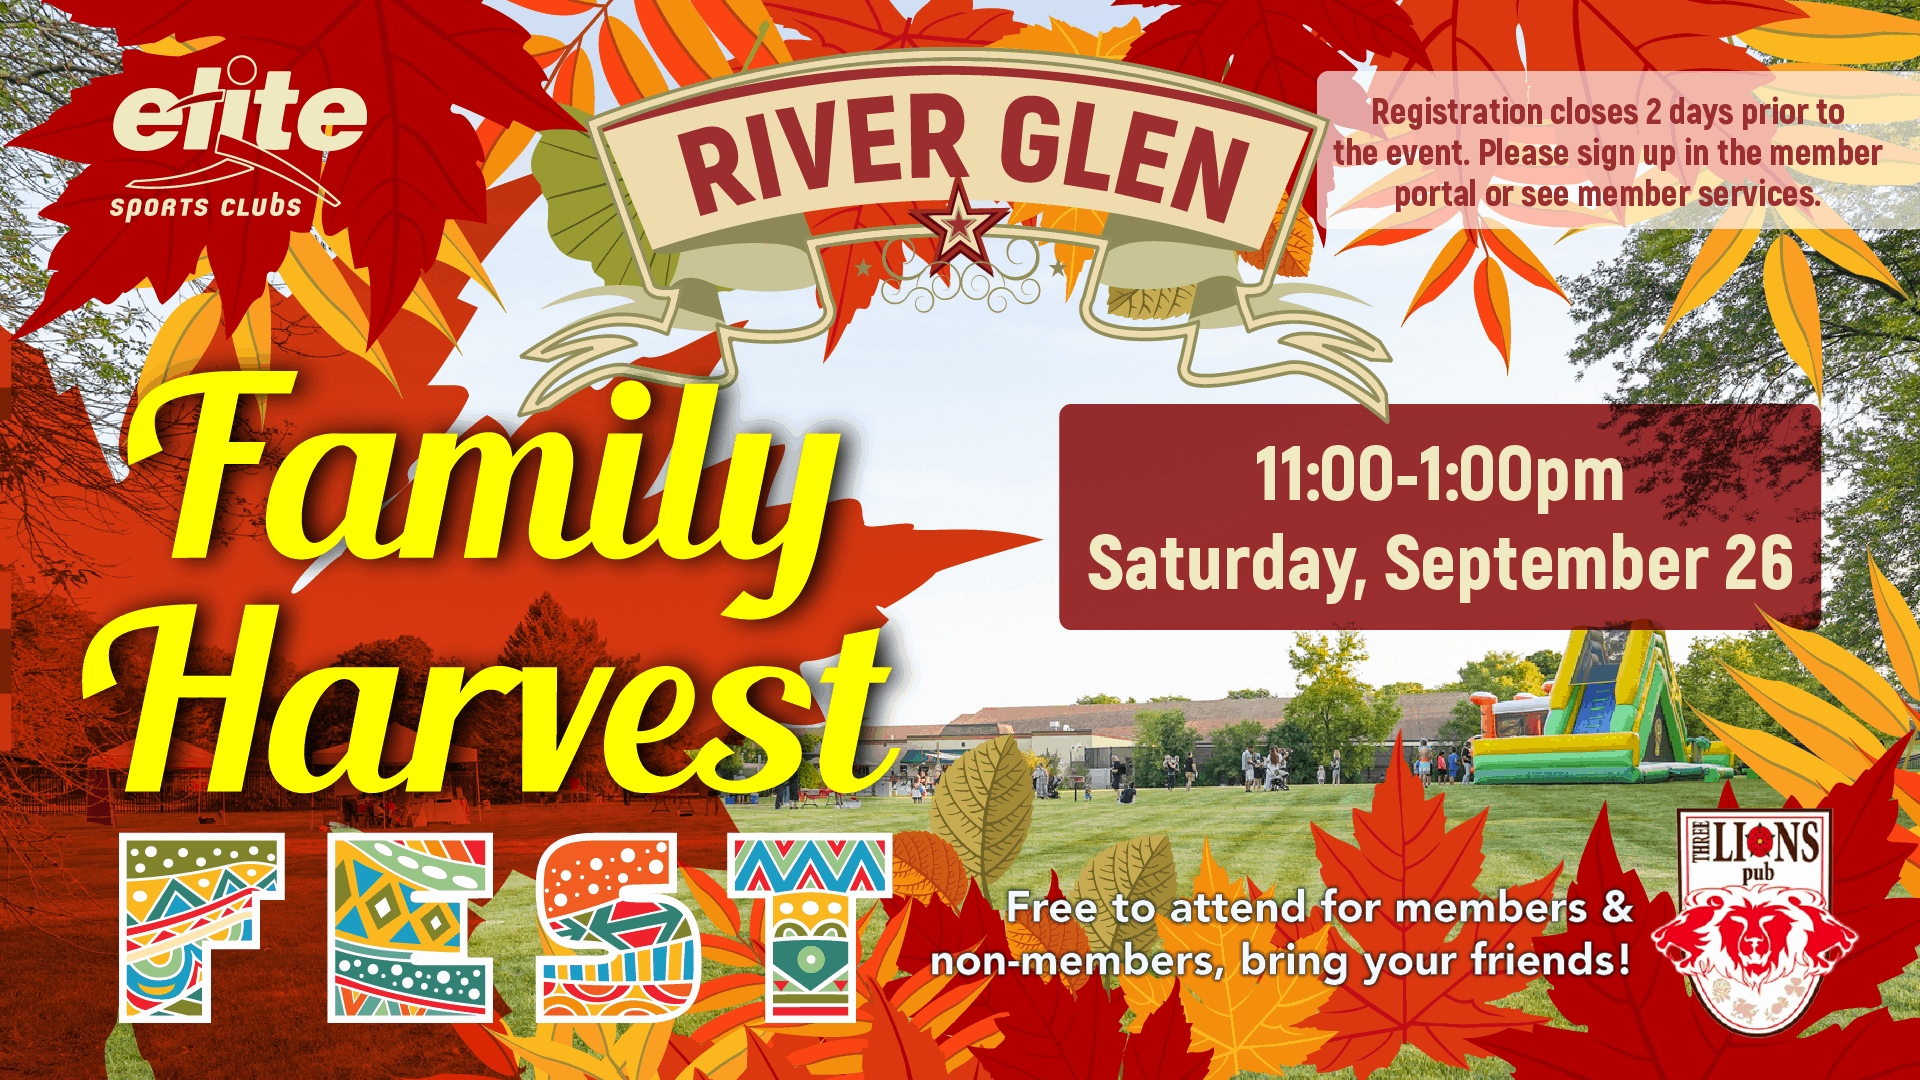 Family Harvest Fest - Elite River Glen - September 2020